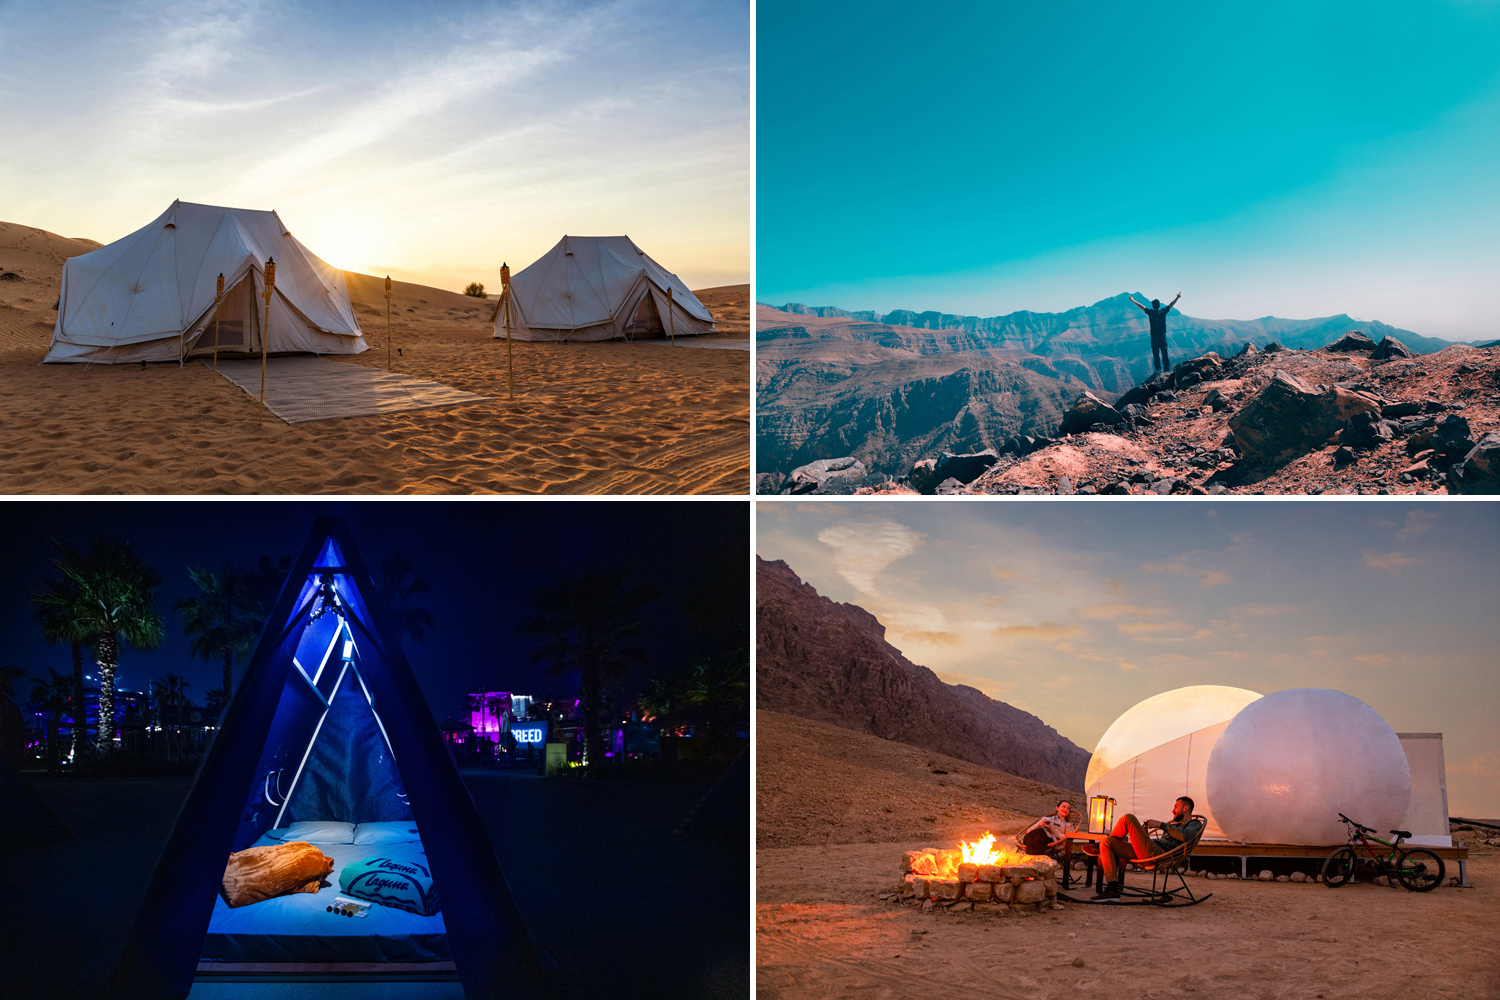 Four all-new outdoor adventures now open in the UAE